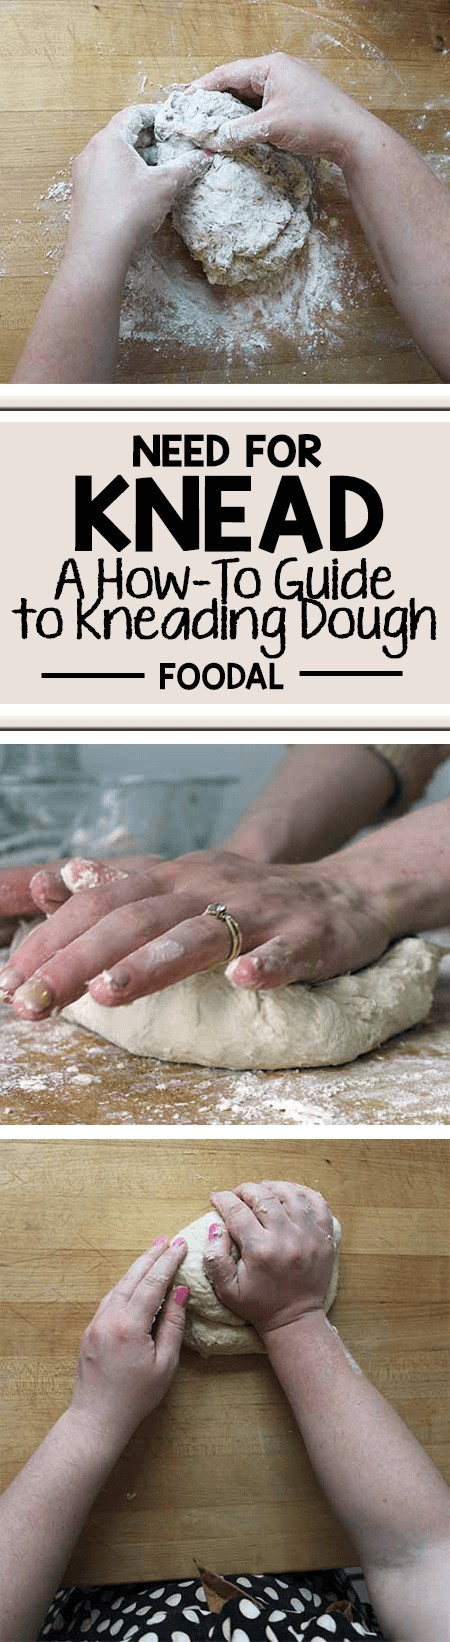 Have you ever wondered why kneading dough is so important? Have you poured hours into baking bread, only to have it crumble when you cut it? Learn about the purpose of proper gluten development and gain new tips for doing it best. Soon you'll be on your way to becoming a homemade bread baking master! https://foodal.com/knowledge/baking/kneading-dough/